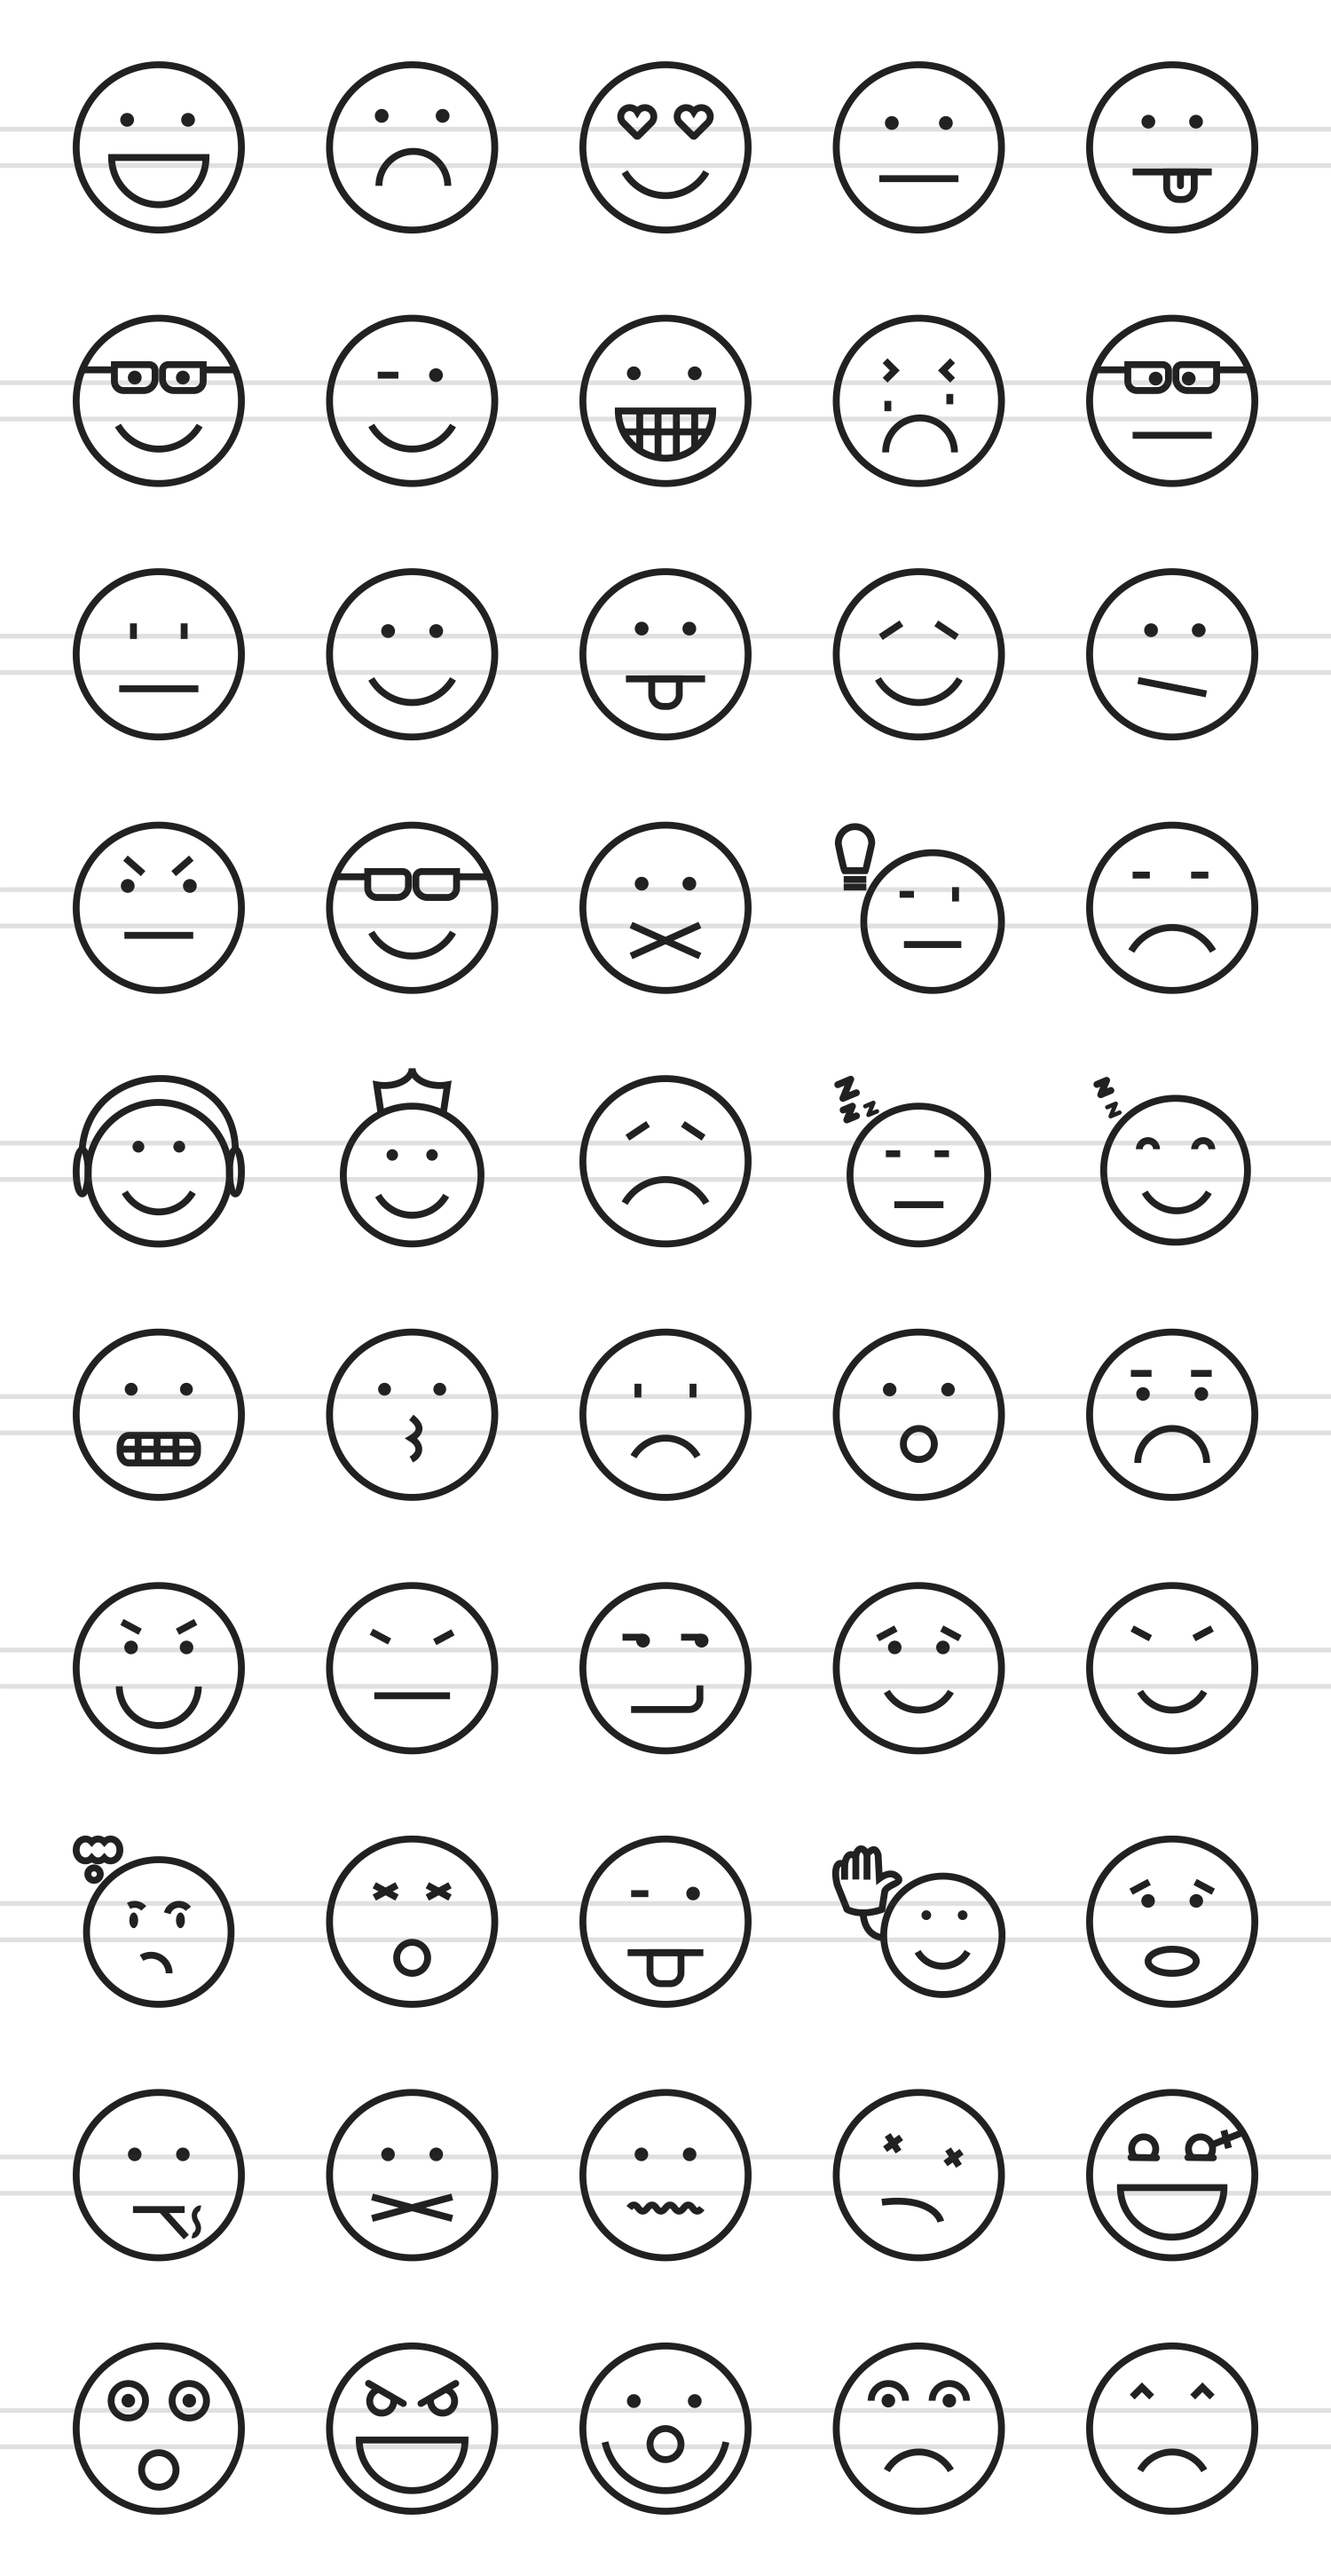 50 Emoticons Line Icons example image 2